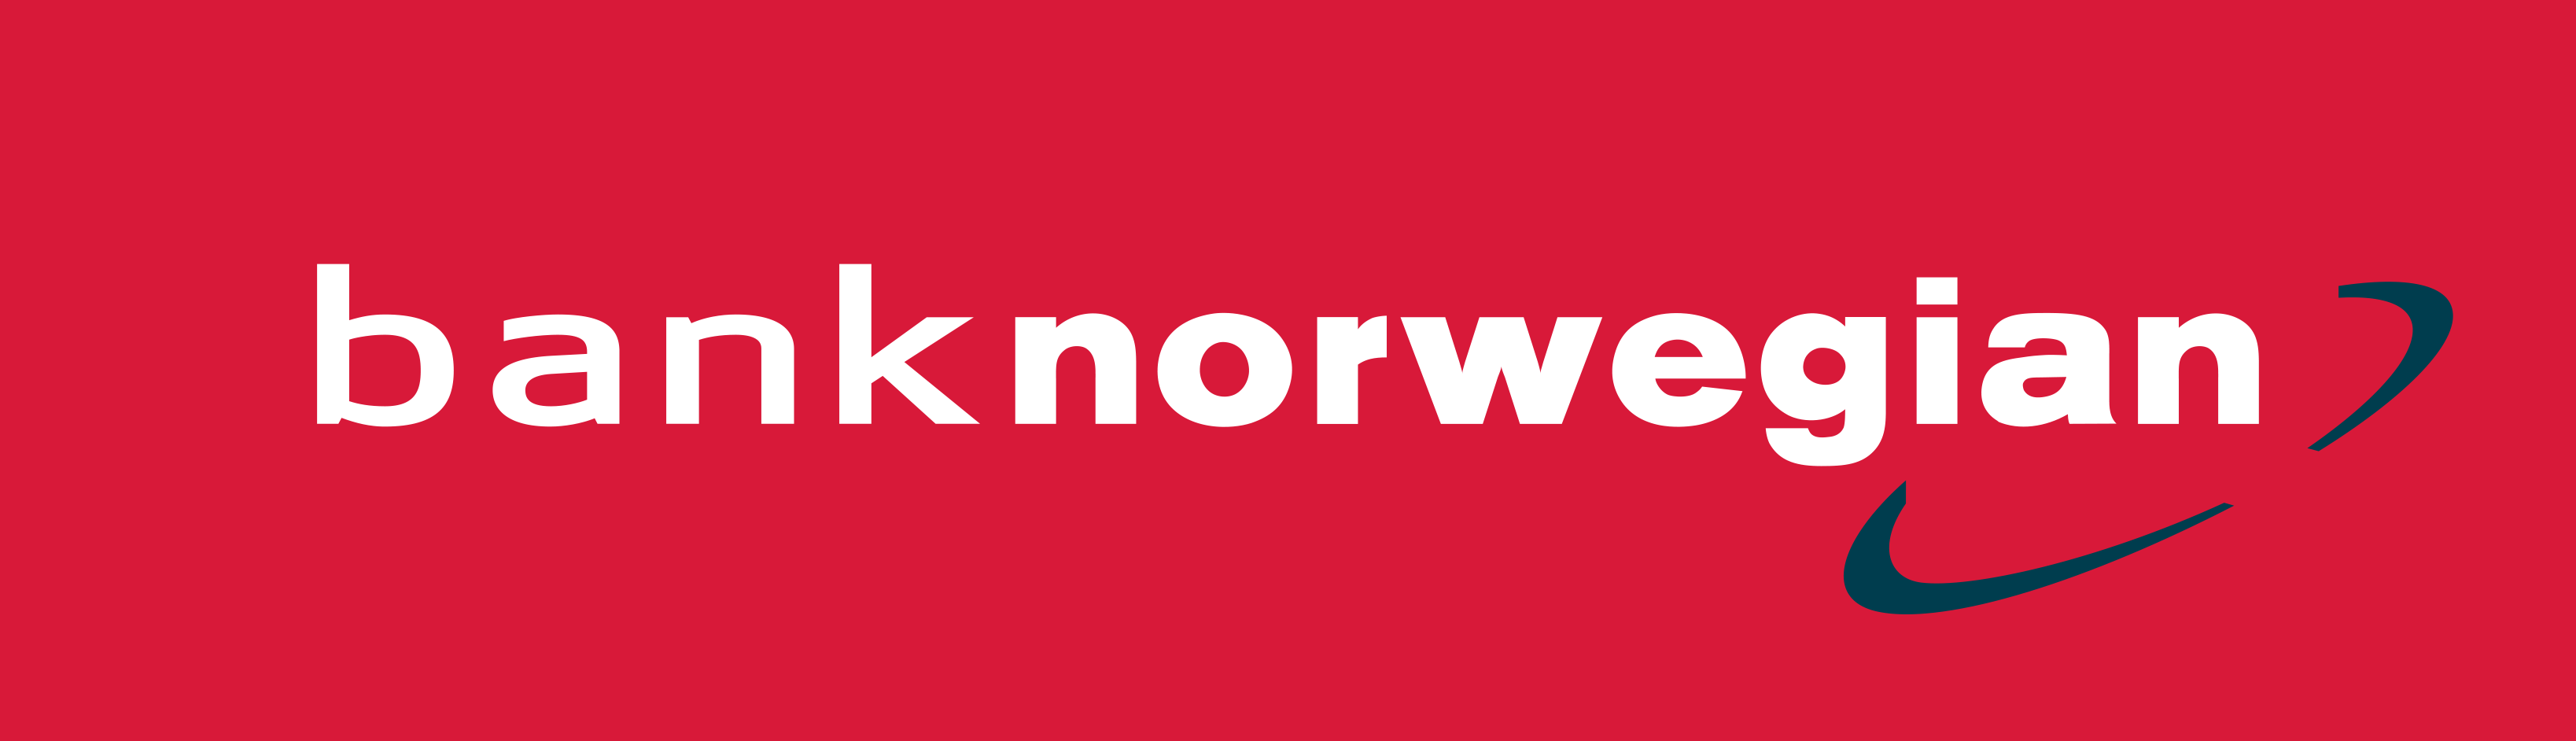 Bank Norwegian, billigt lån